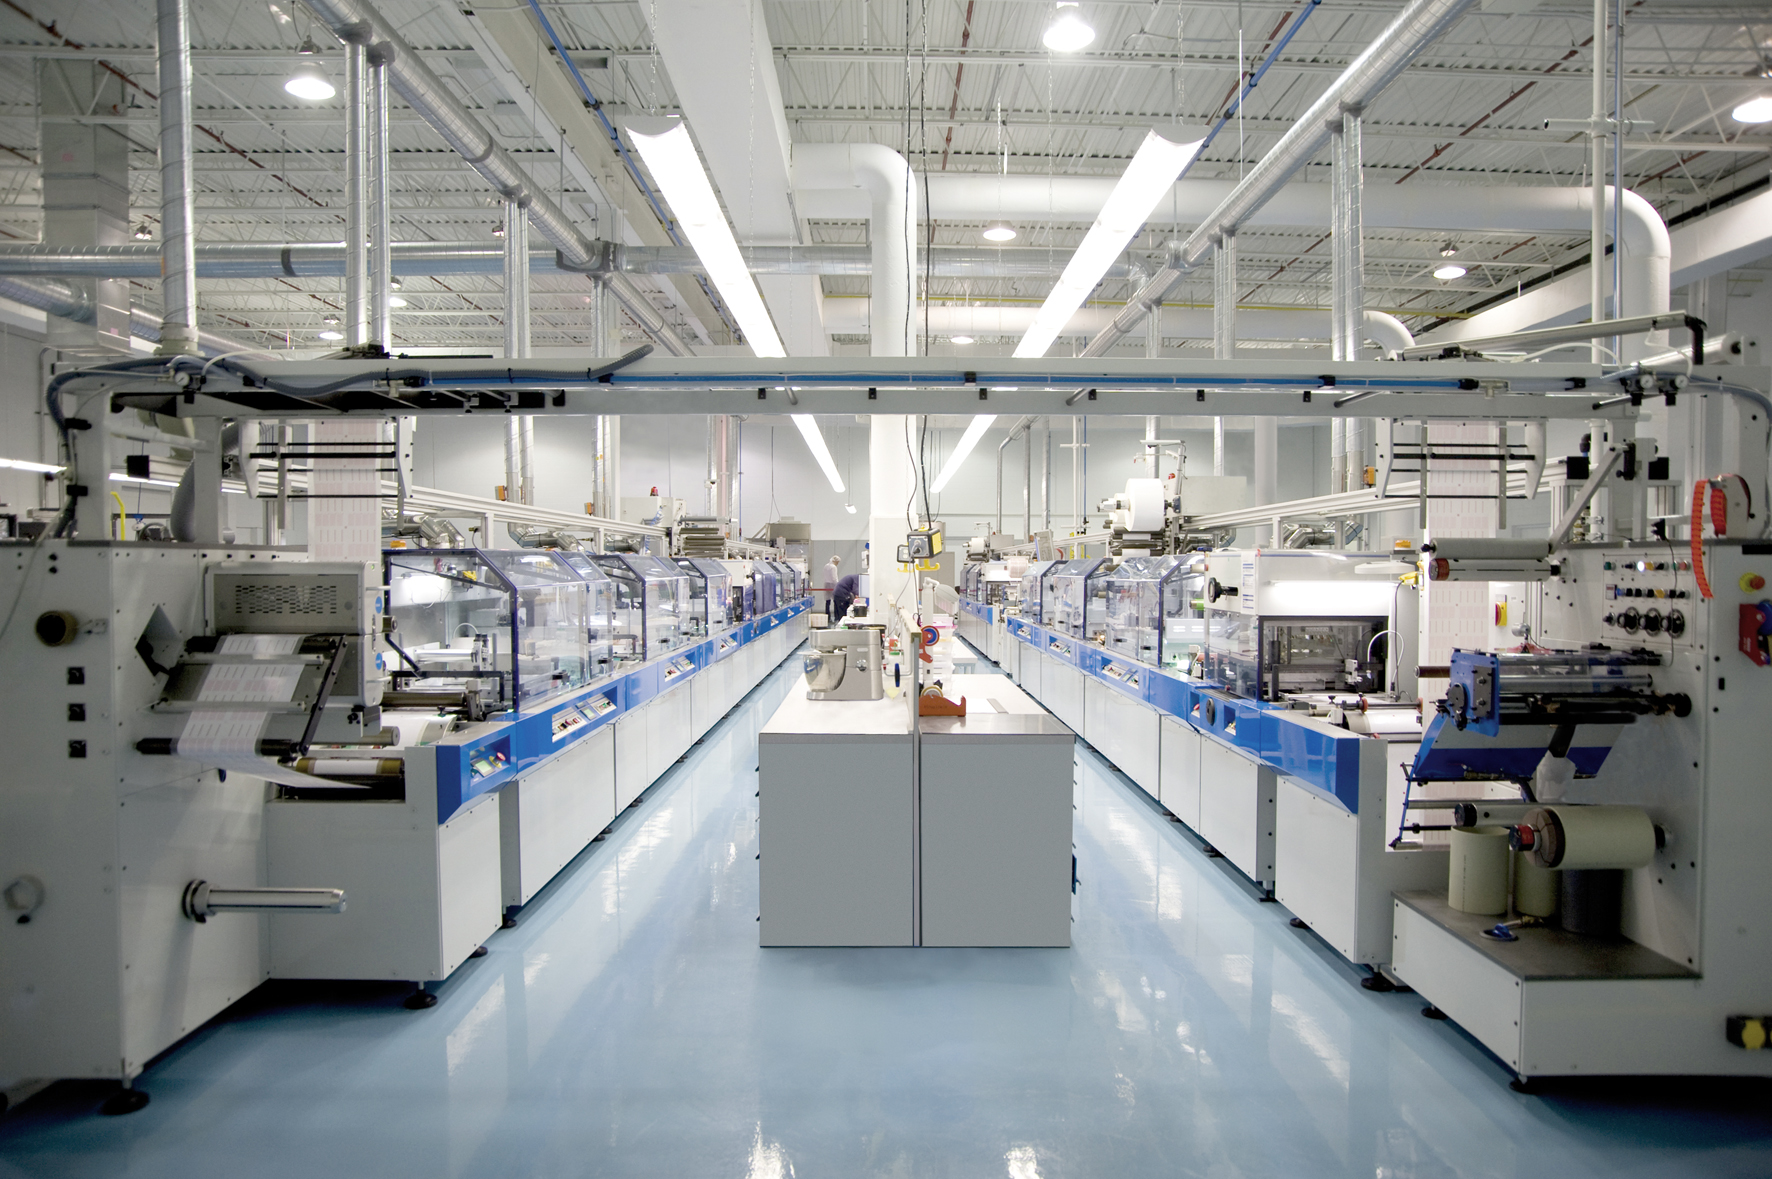 Dahlbeck Engineering Systems for biopharma production